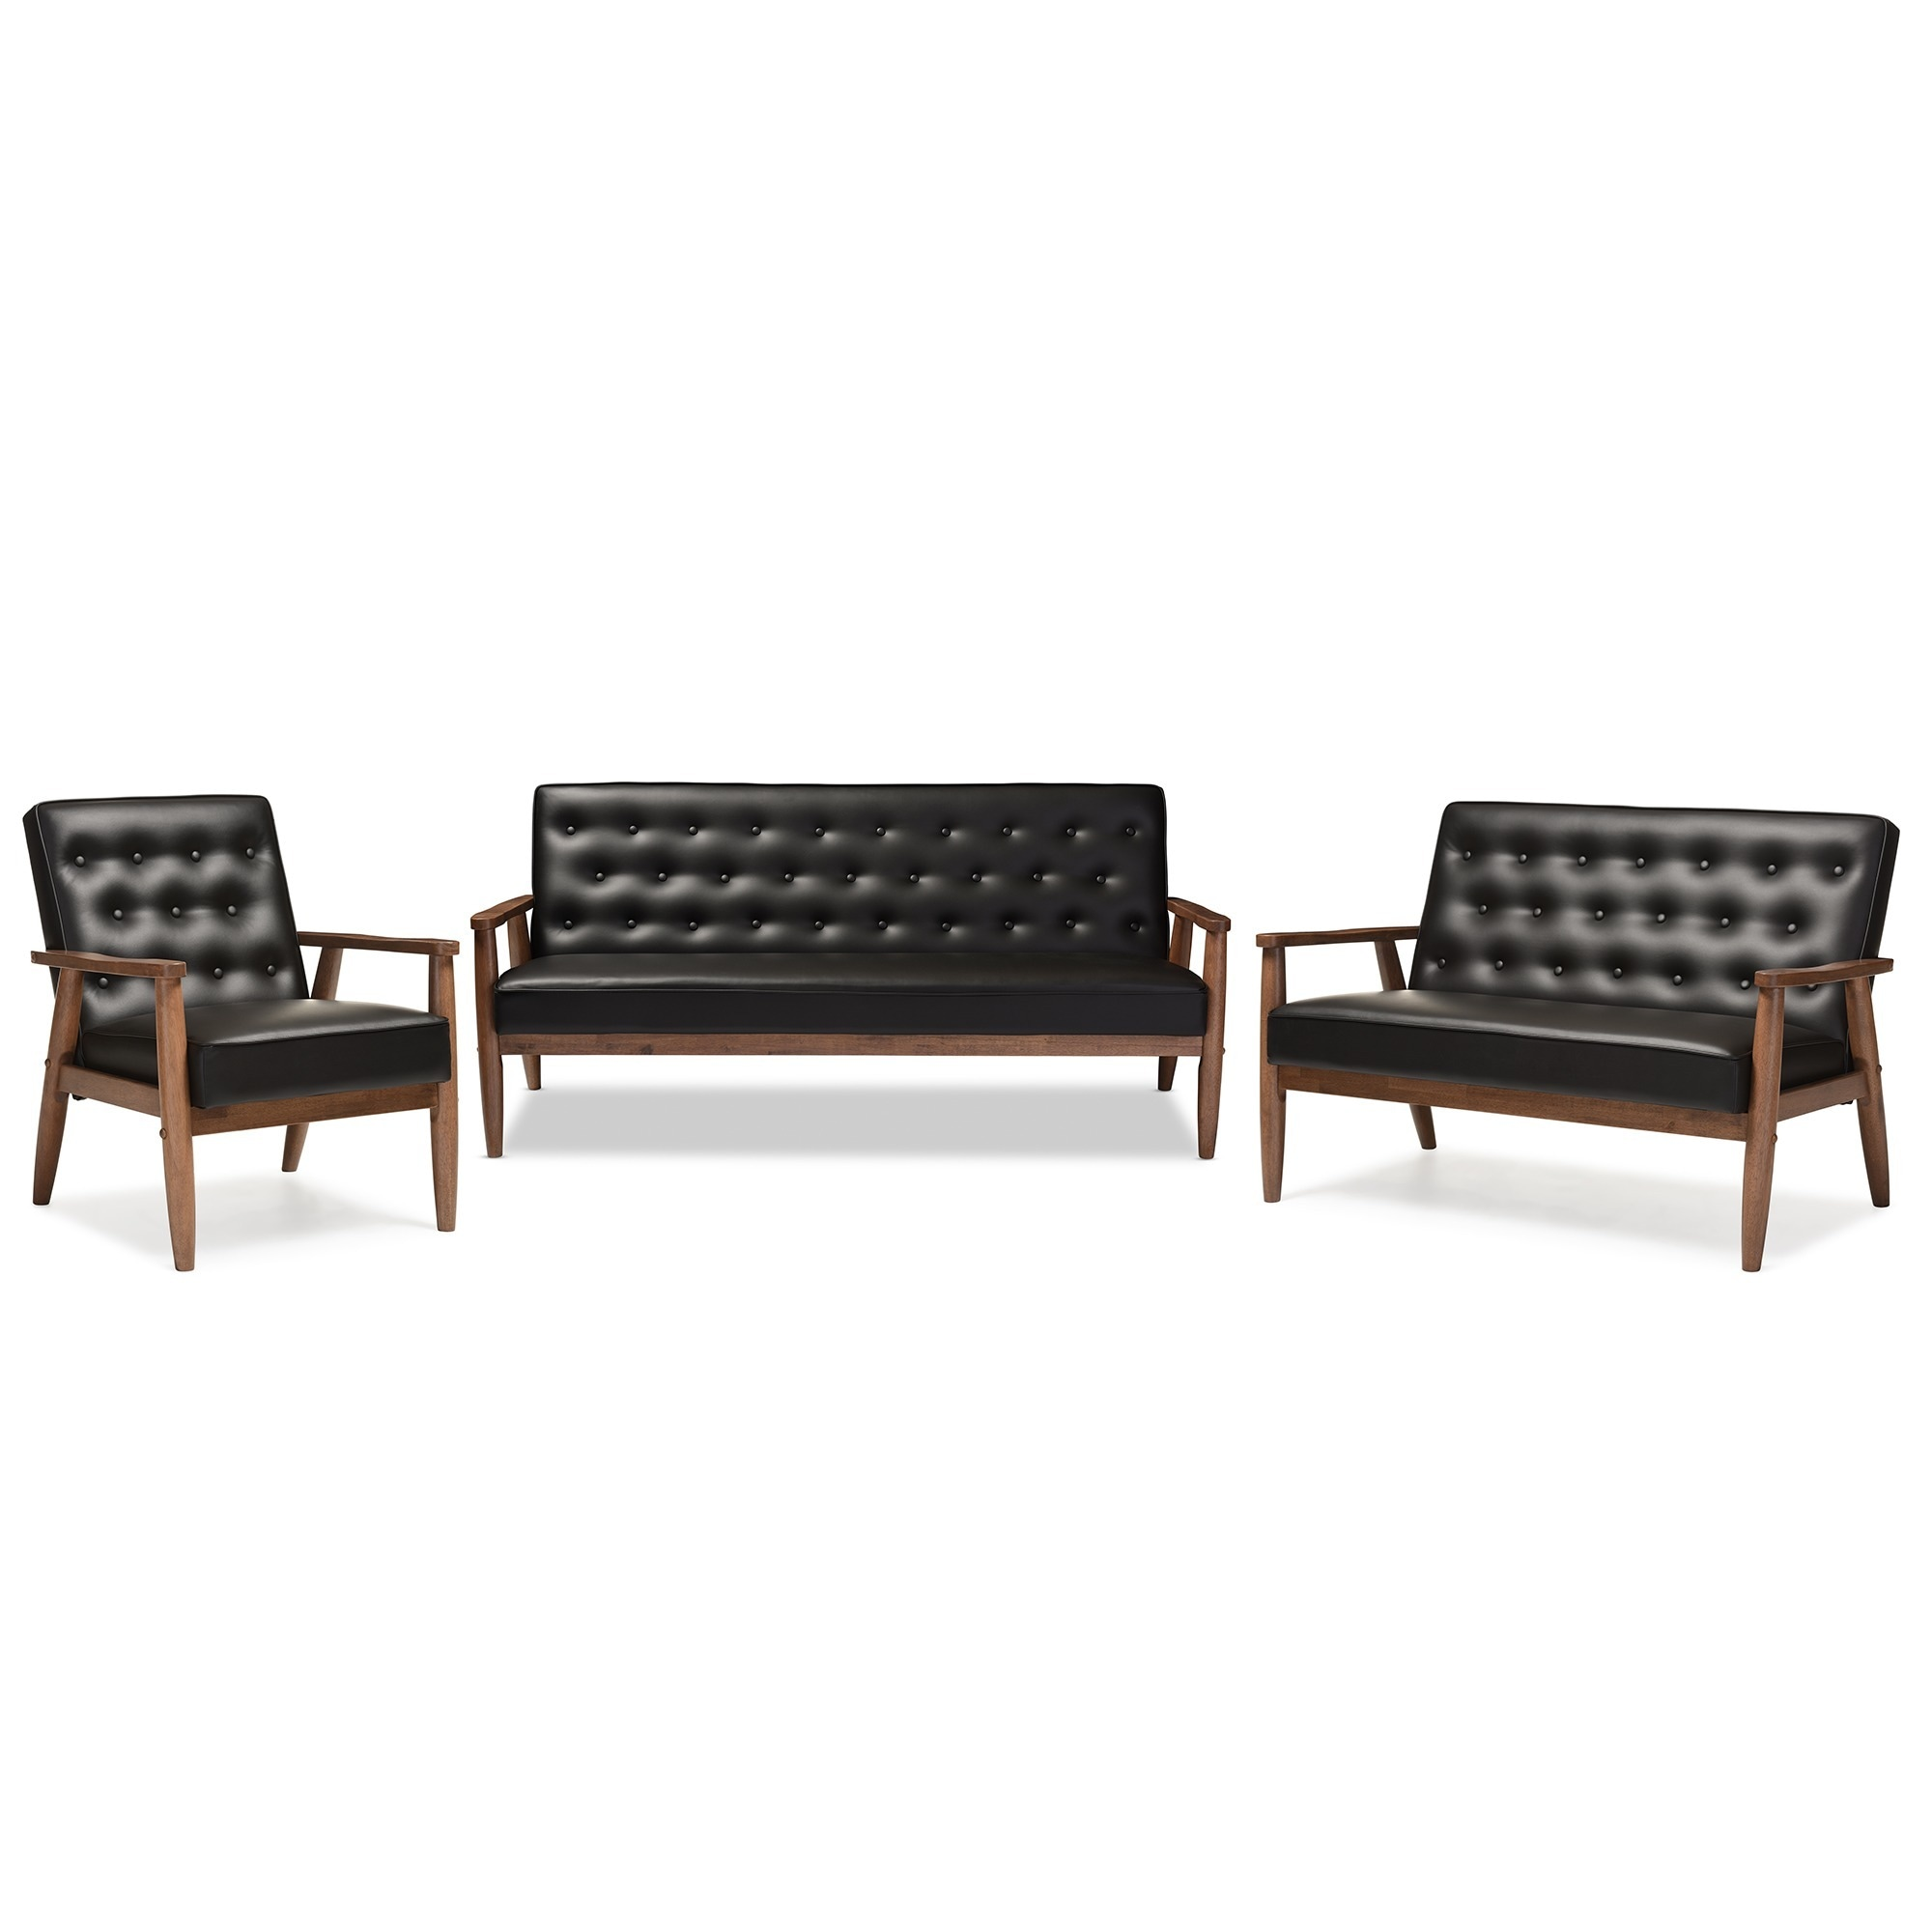 Retro Sofa Leather Baxton Studio Sorrento Mid Century Retro Modern Black Faux Leather Upholstered Wooden 3 Piece Sofa Set